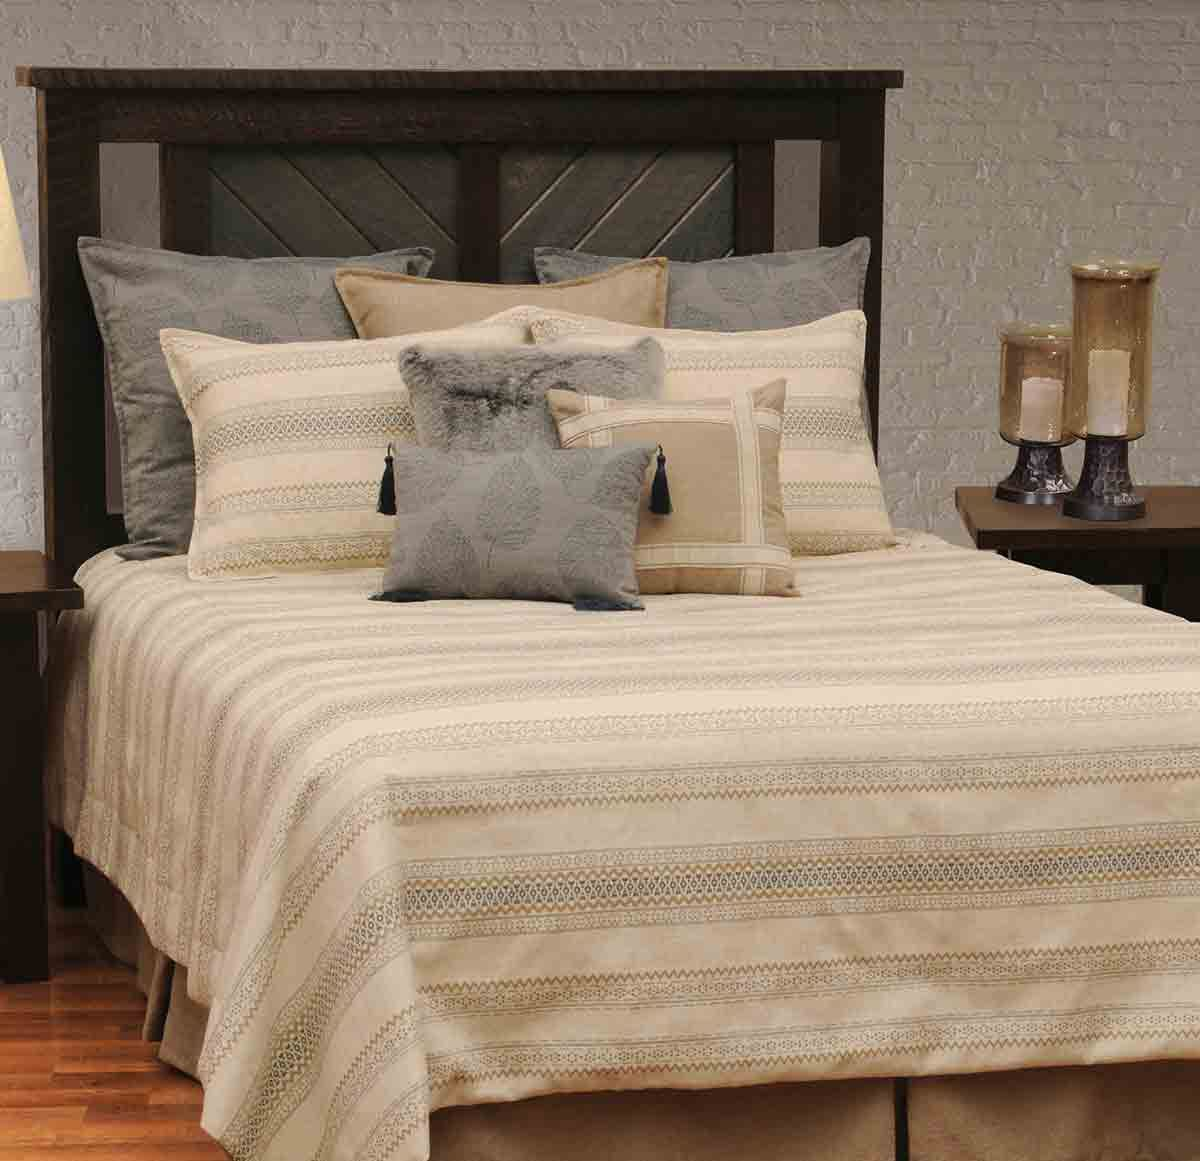 Ava Duvet Cover - Full/Queen